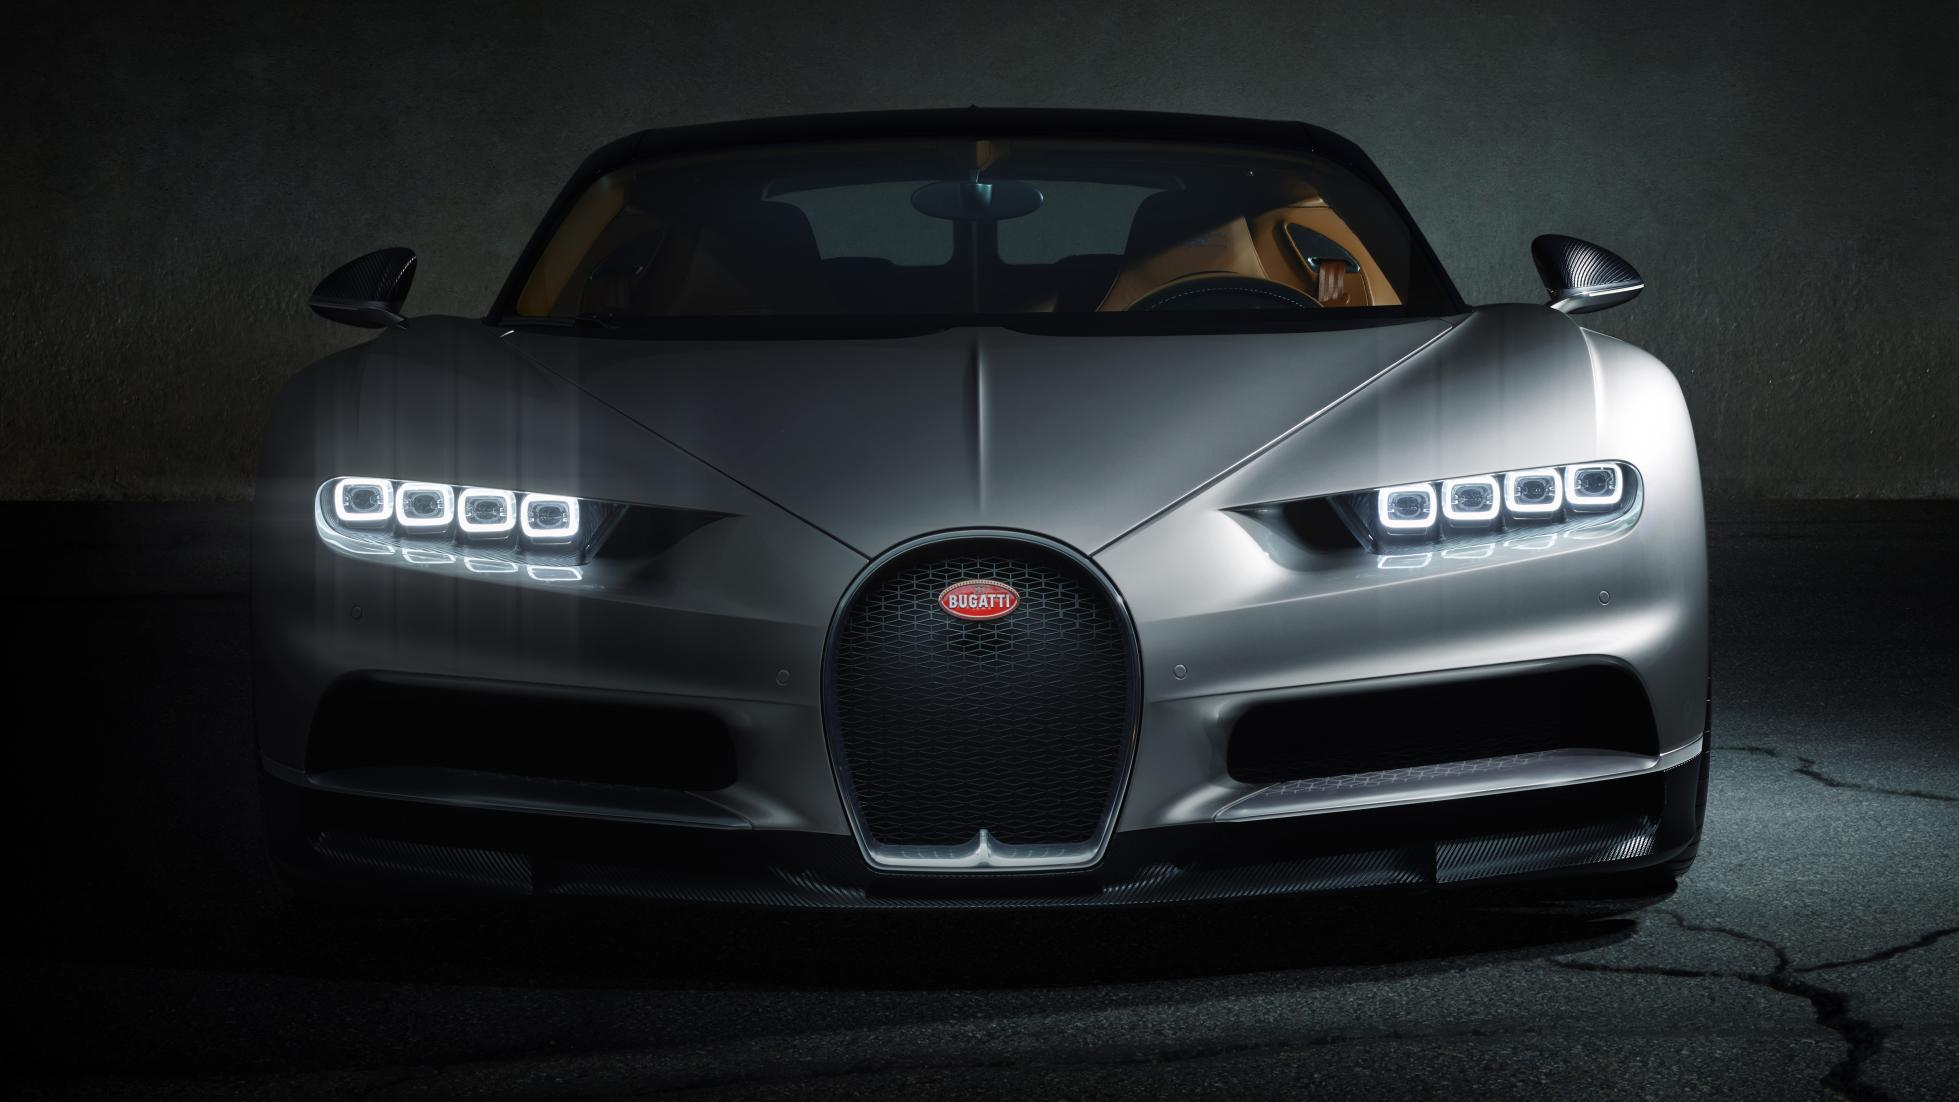 Bugatti Chiron is coming to Goodwood - The Supercar Blog